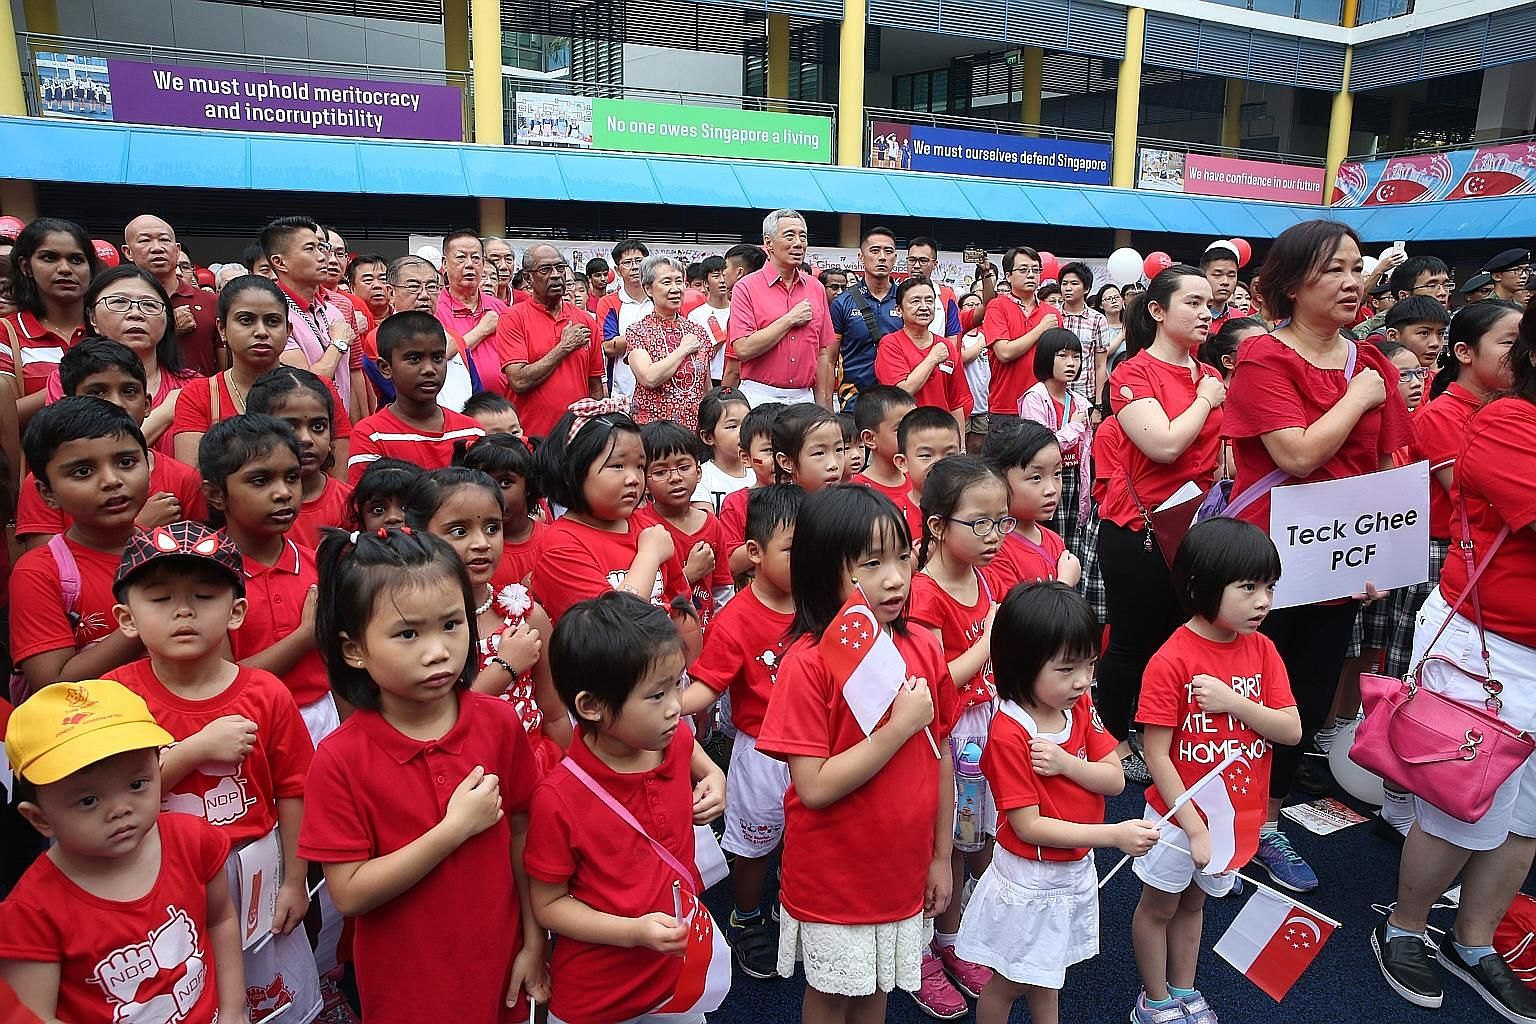 Prime Minister Lee Hsien Loong and Mrs Lee reciting the Pledge with residents, grassroots leaders and children at the Teck Ghee National Day Observance Ceremony yesterday.